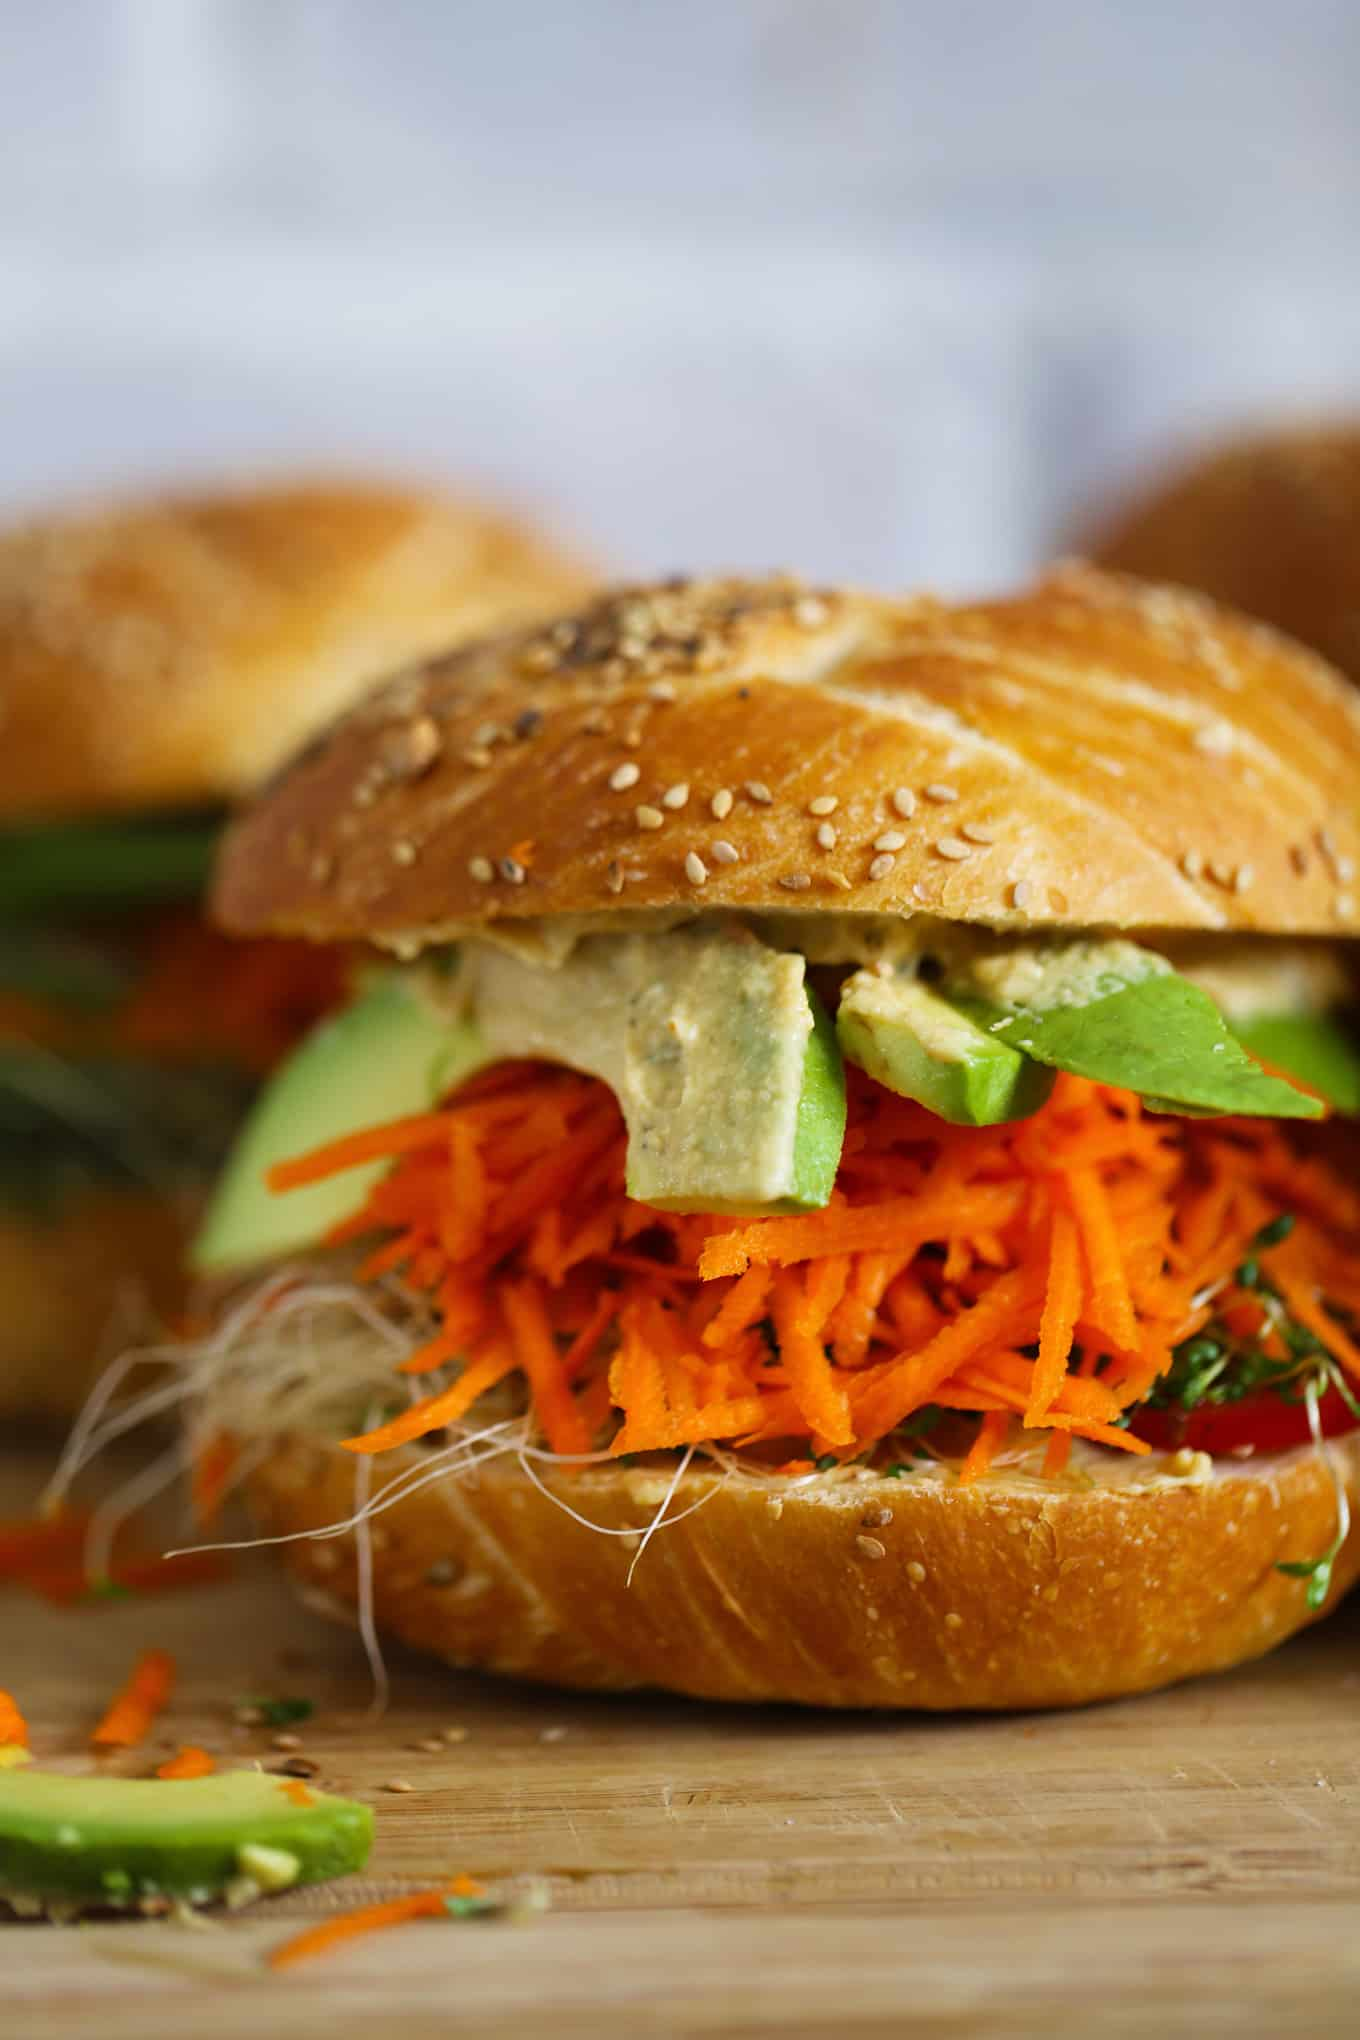 Hummus and avocado sandwich- A roll topped with hummus, tomato, grated carrot, avocado, and sprouts